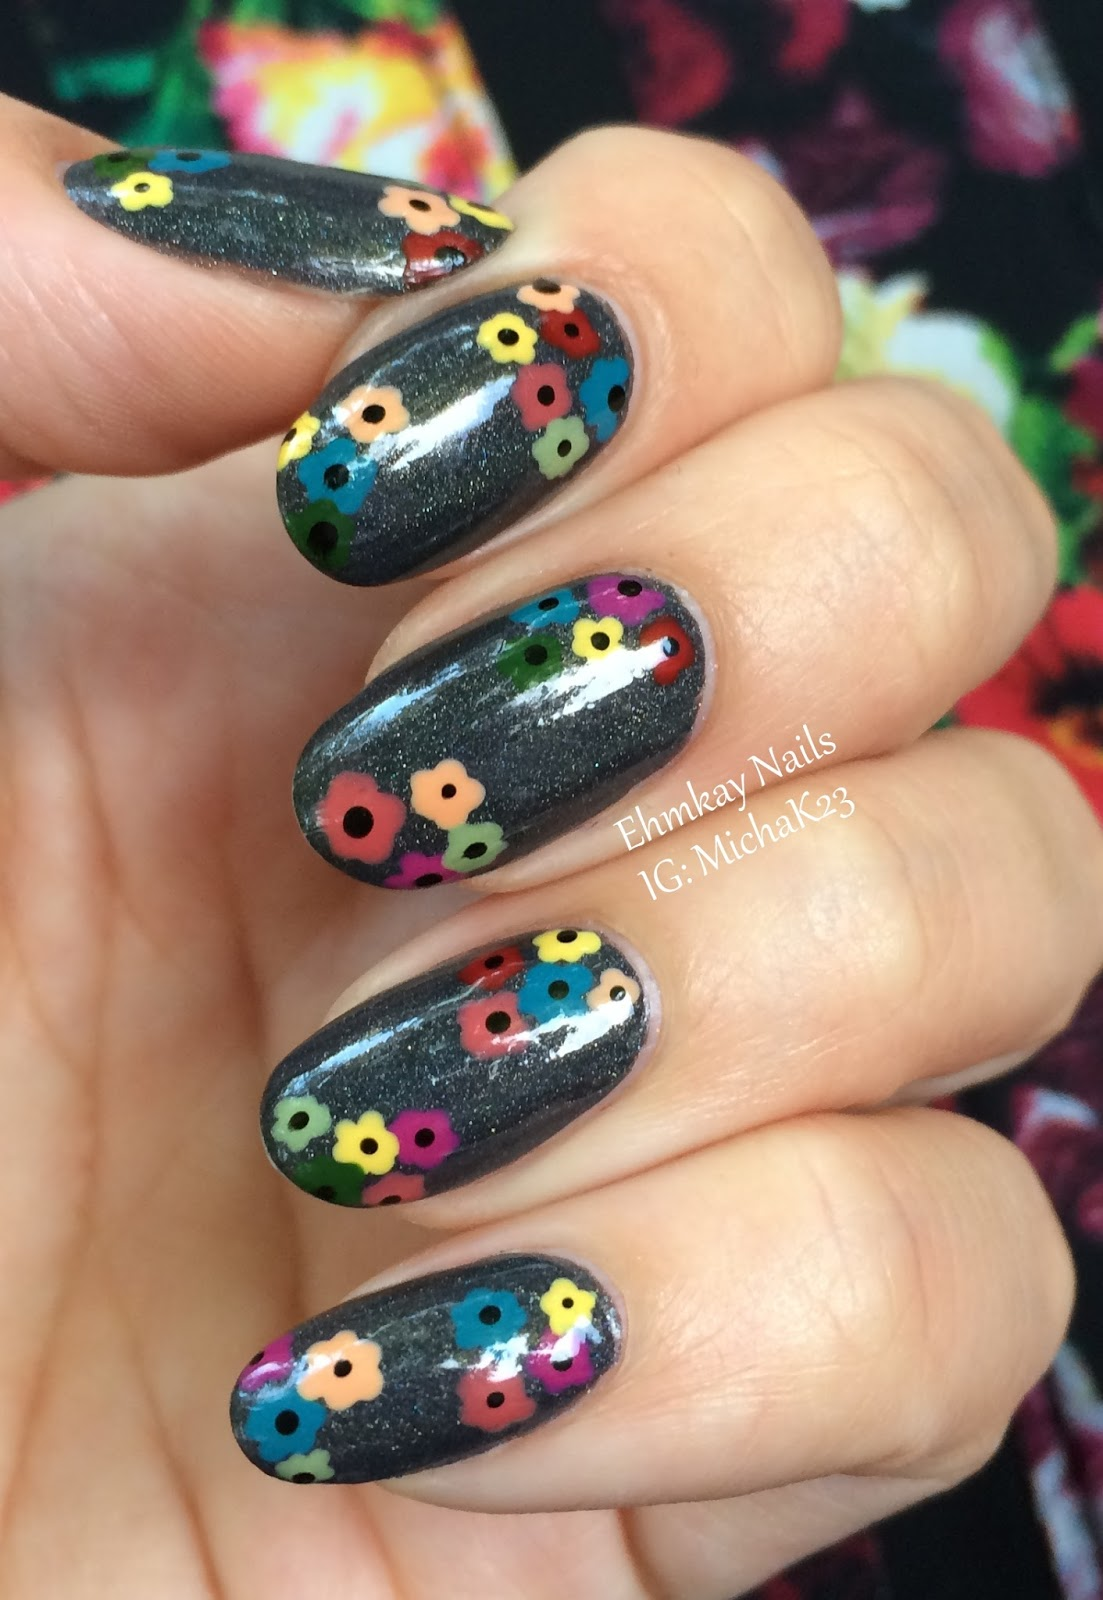 Floral Manicures For Spring And: Ehmkay Nails: Multicolored Floral Dotticure Nail Art